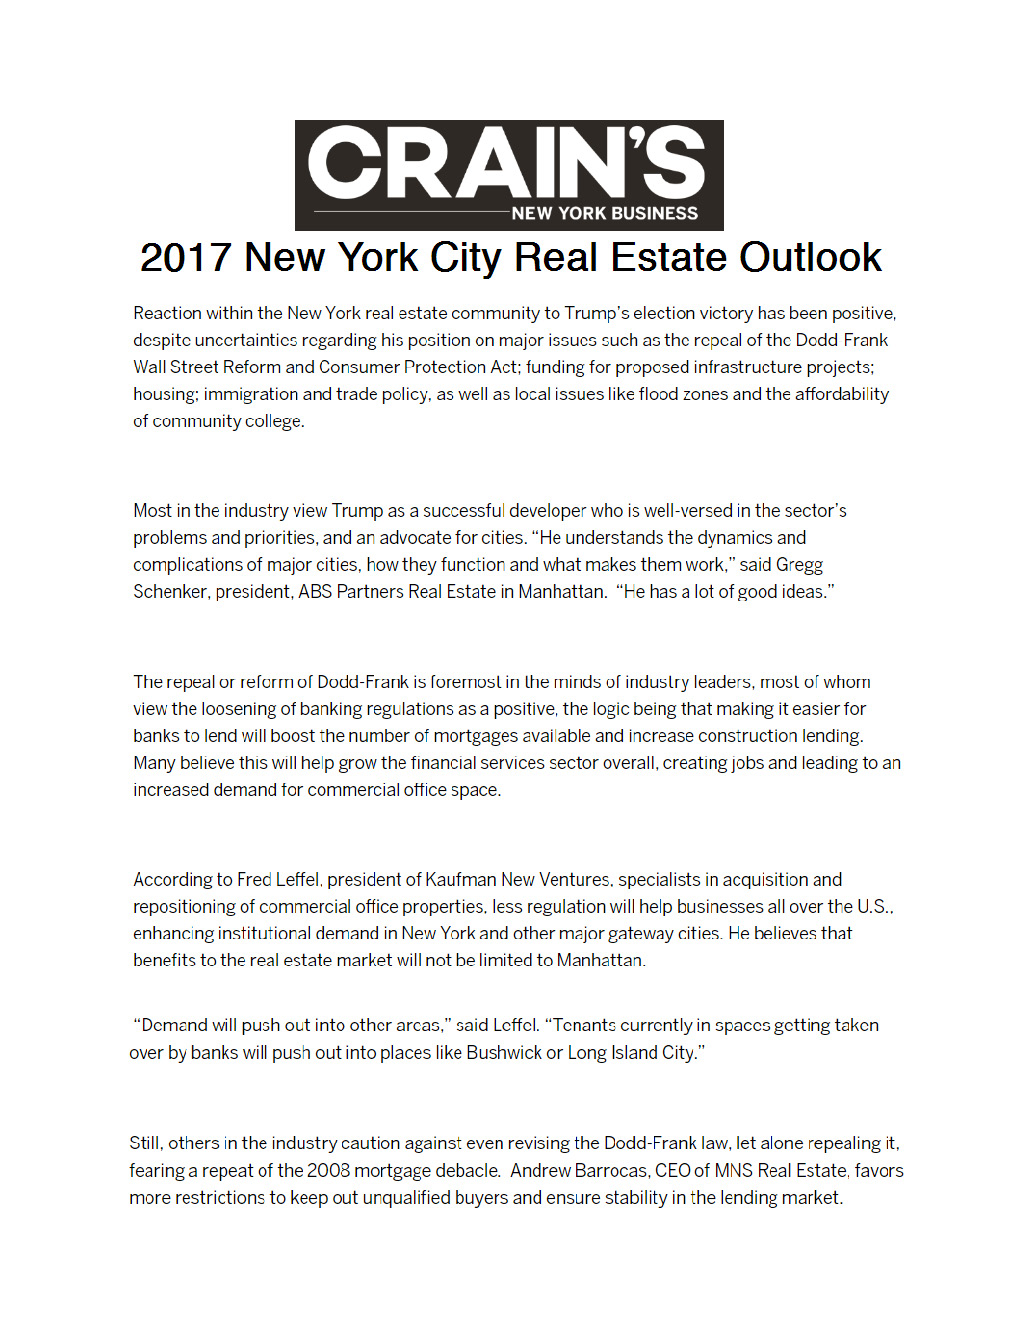 crains-online-2017-new-york-city-real-estate-outlook-12-14-16-1_page_1